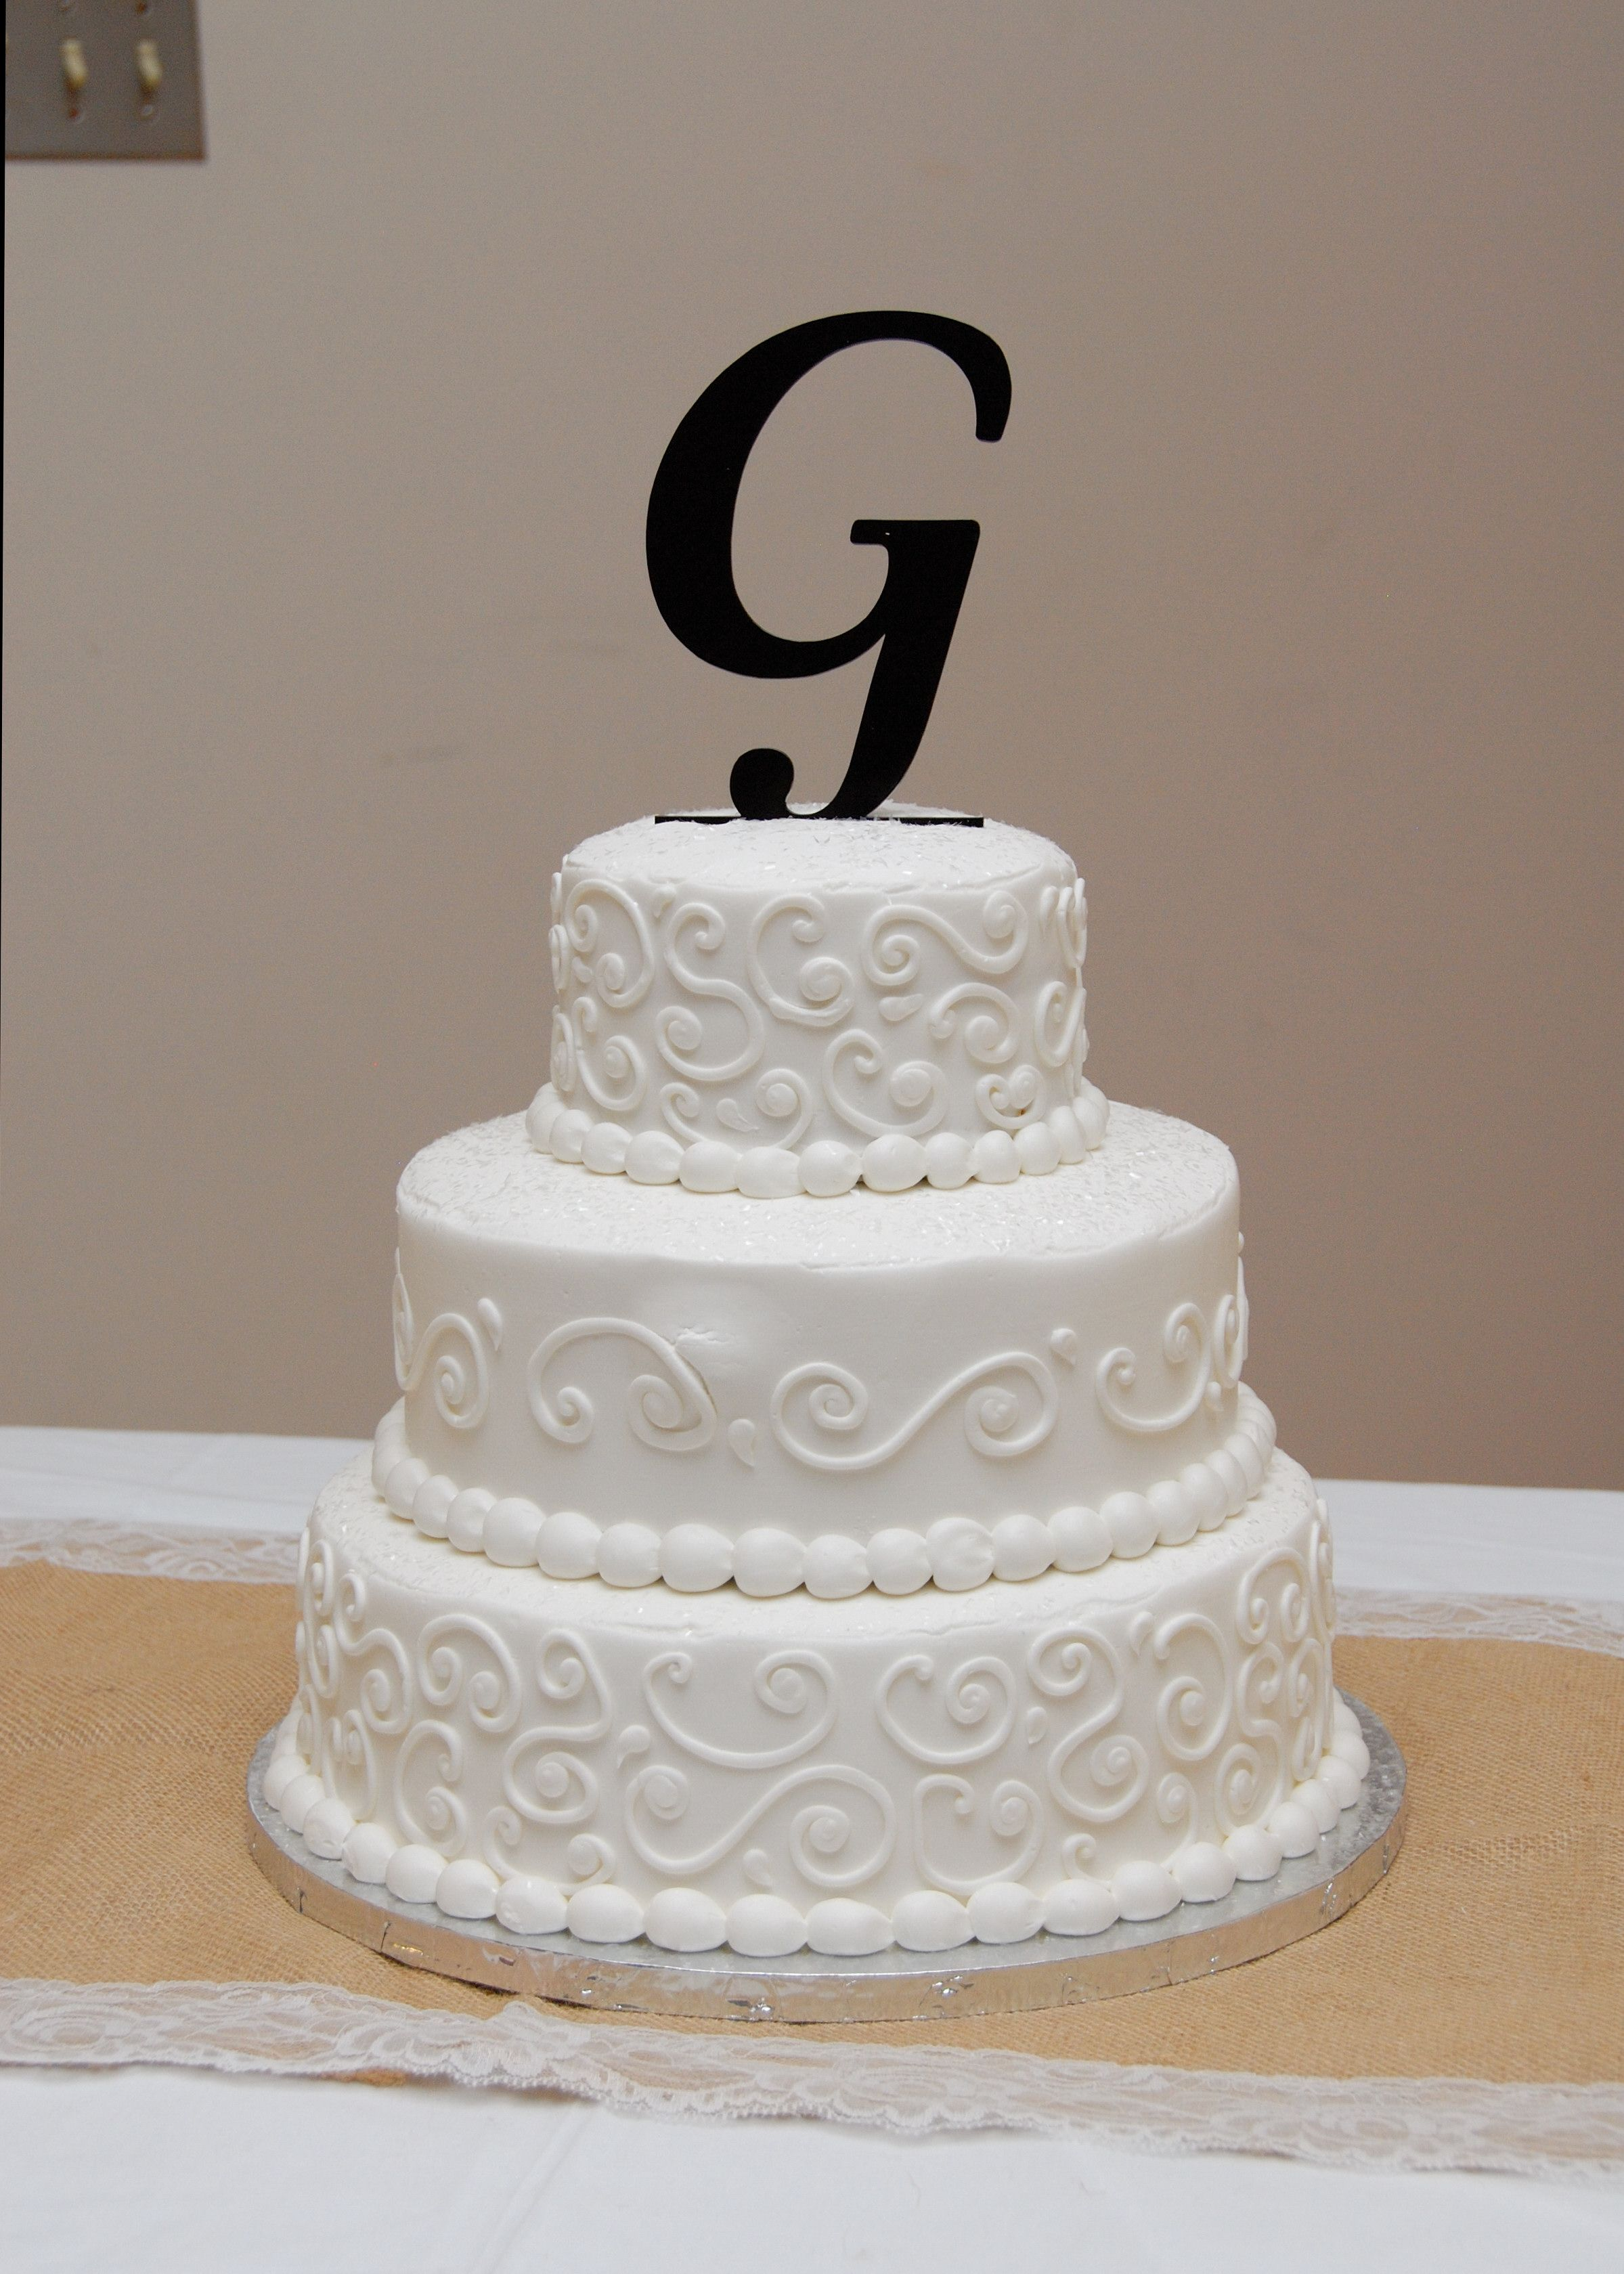 cost of wedding cakes for 150 people | wedding ideas | pinterest